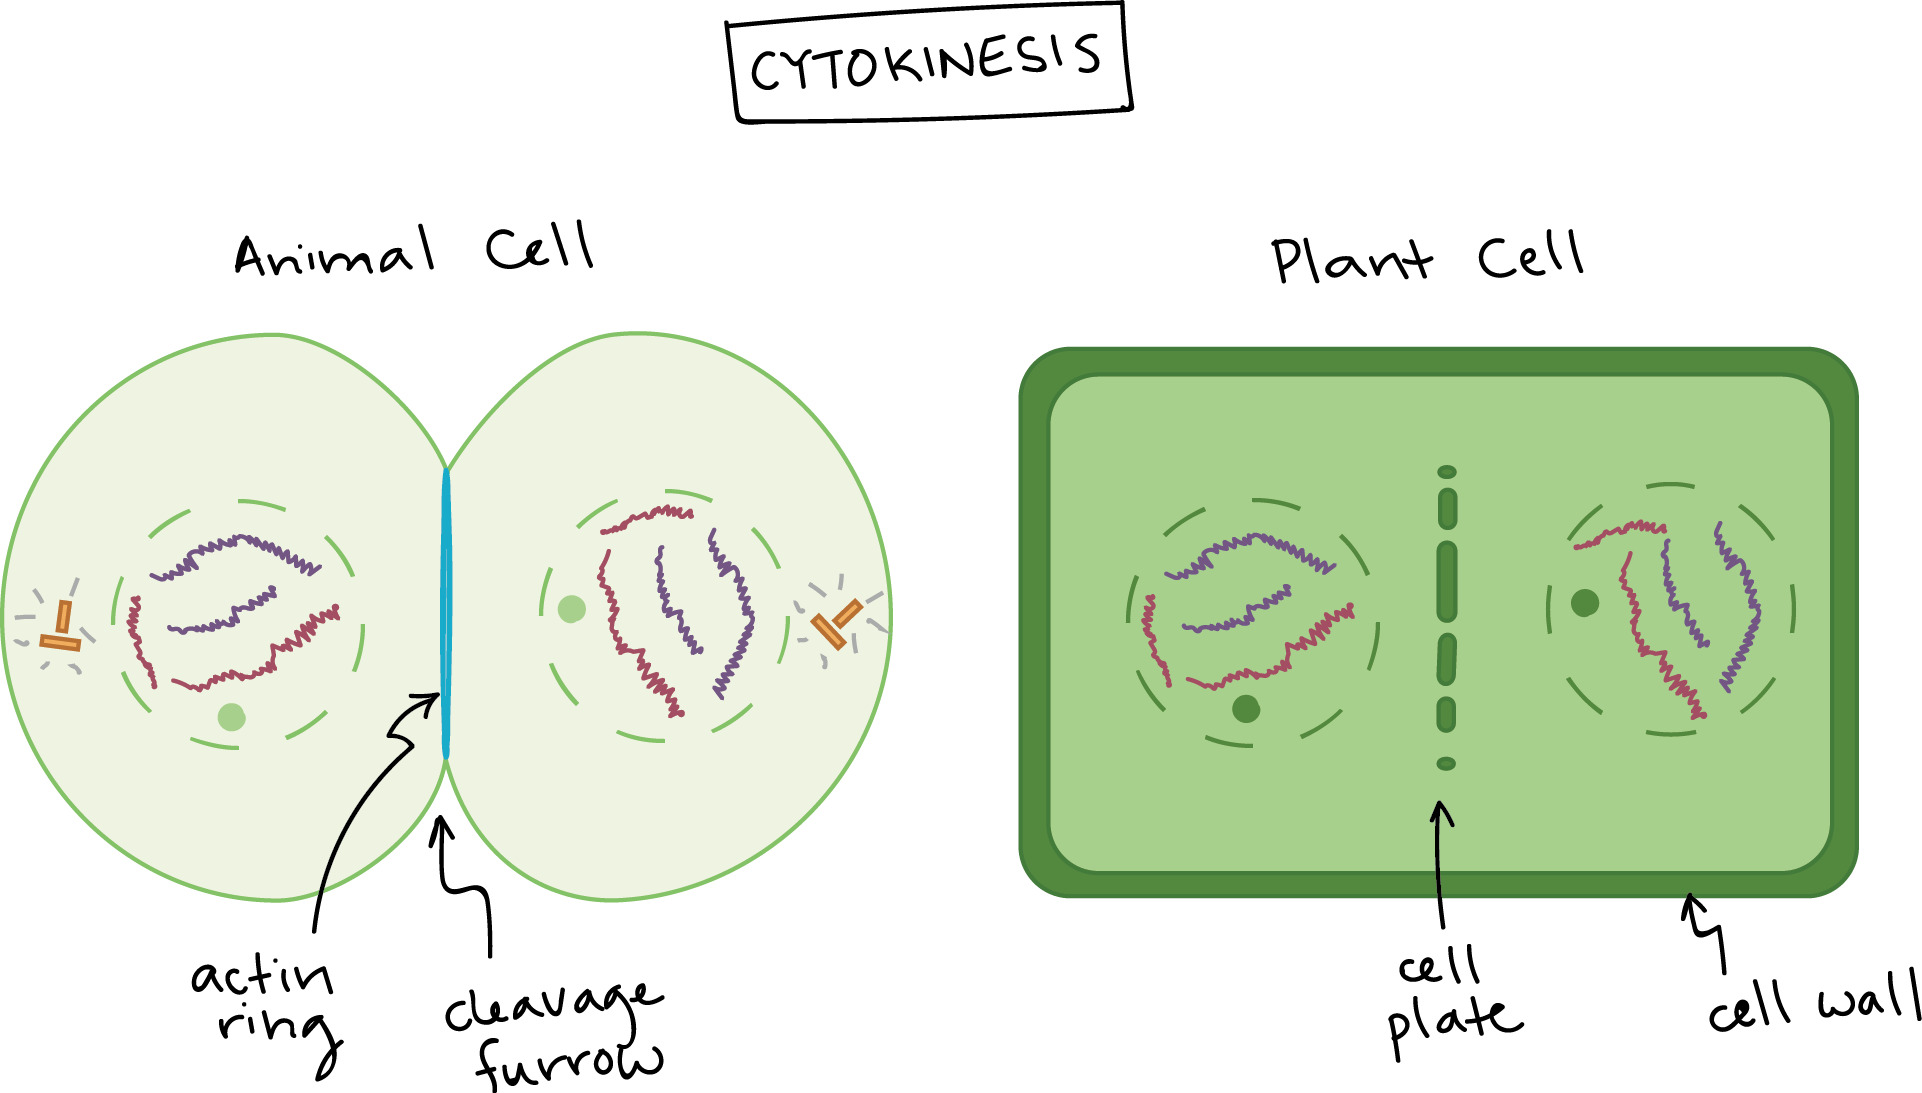 Phases Of Mitosis Biology Article Khan Academy Simple Plant Cell Diagram For Kids 5610jpg Picture On Pinterest